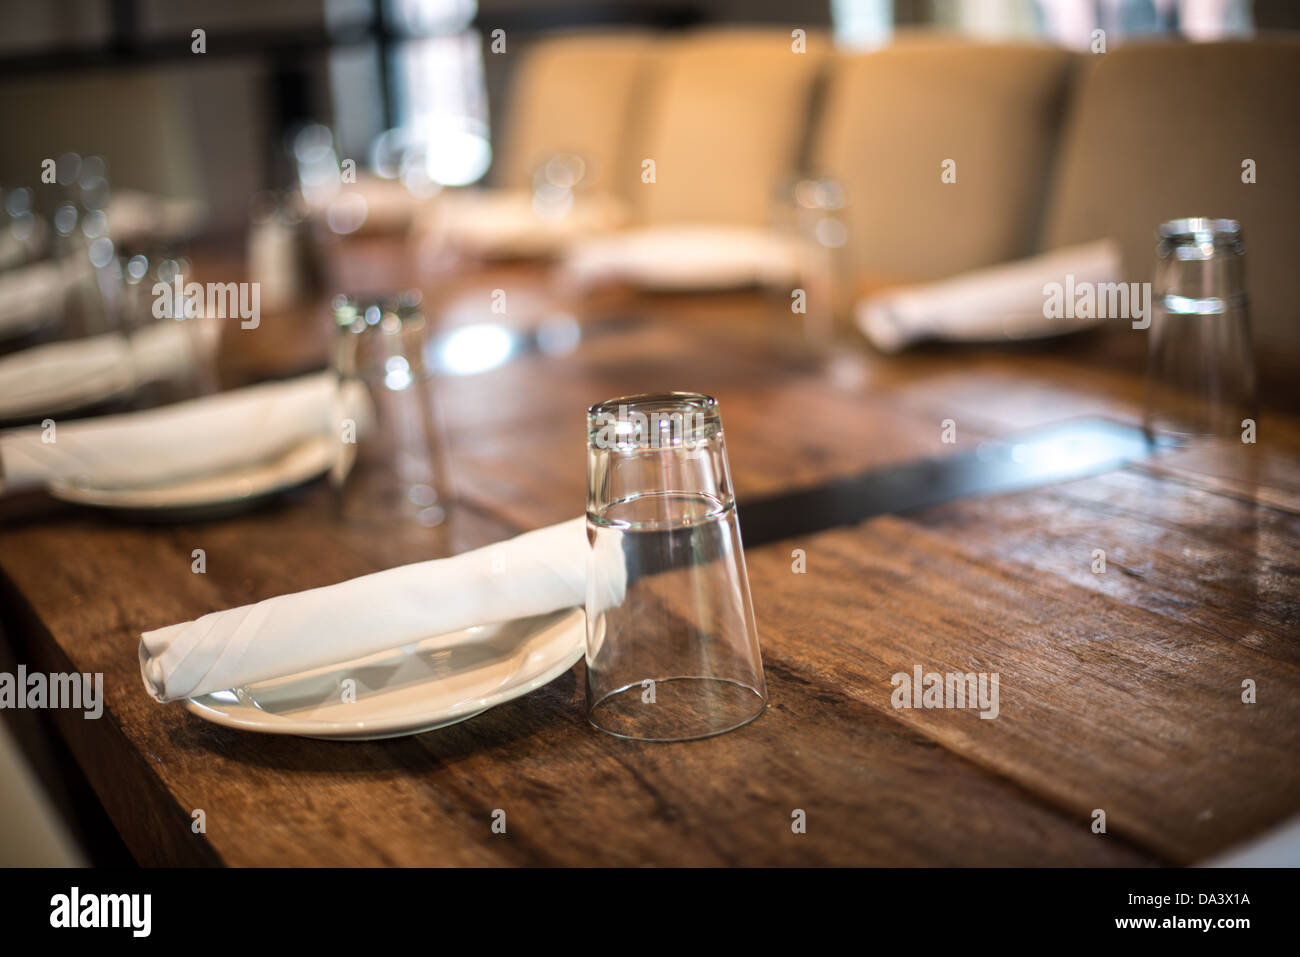 A Simple Table Setting In A Restaurant On A Solid Wooden Table.   Stock  Image